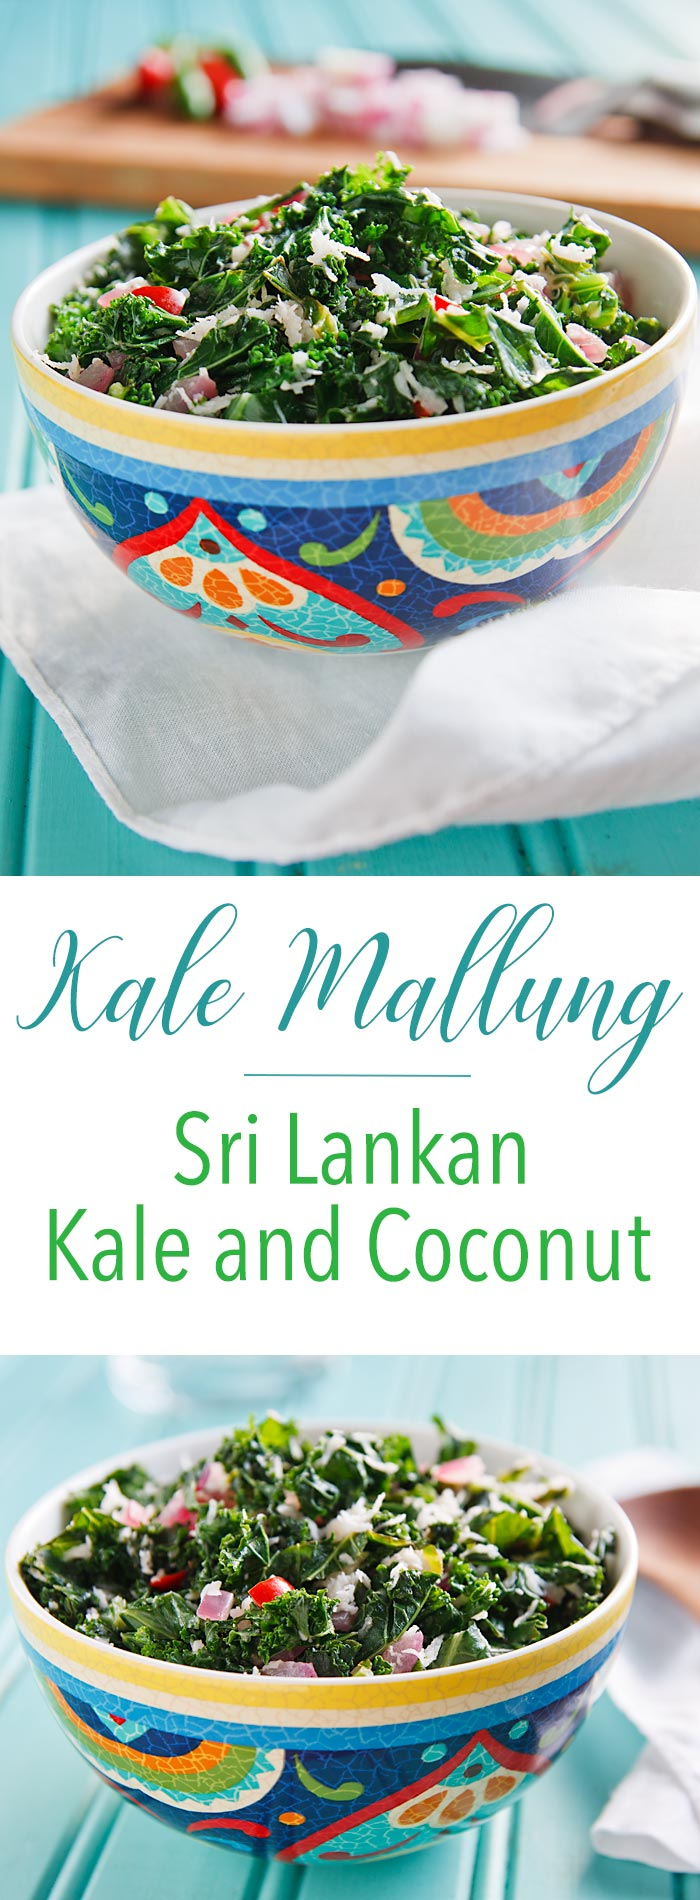 Kale Mallung: In this Sri Lankan dish, each bite of kale is infused with the taste and aroma of coconut. Vegan, gluten-free, and delicious.